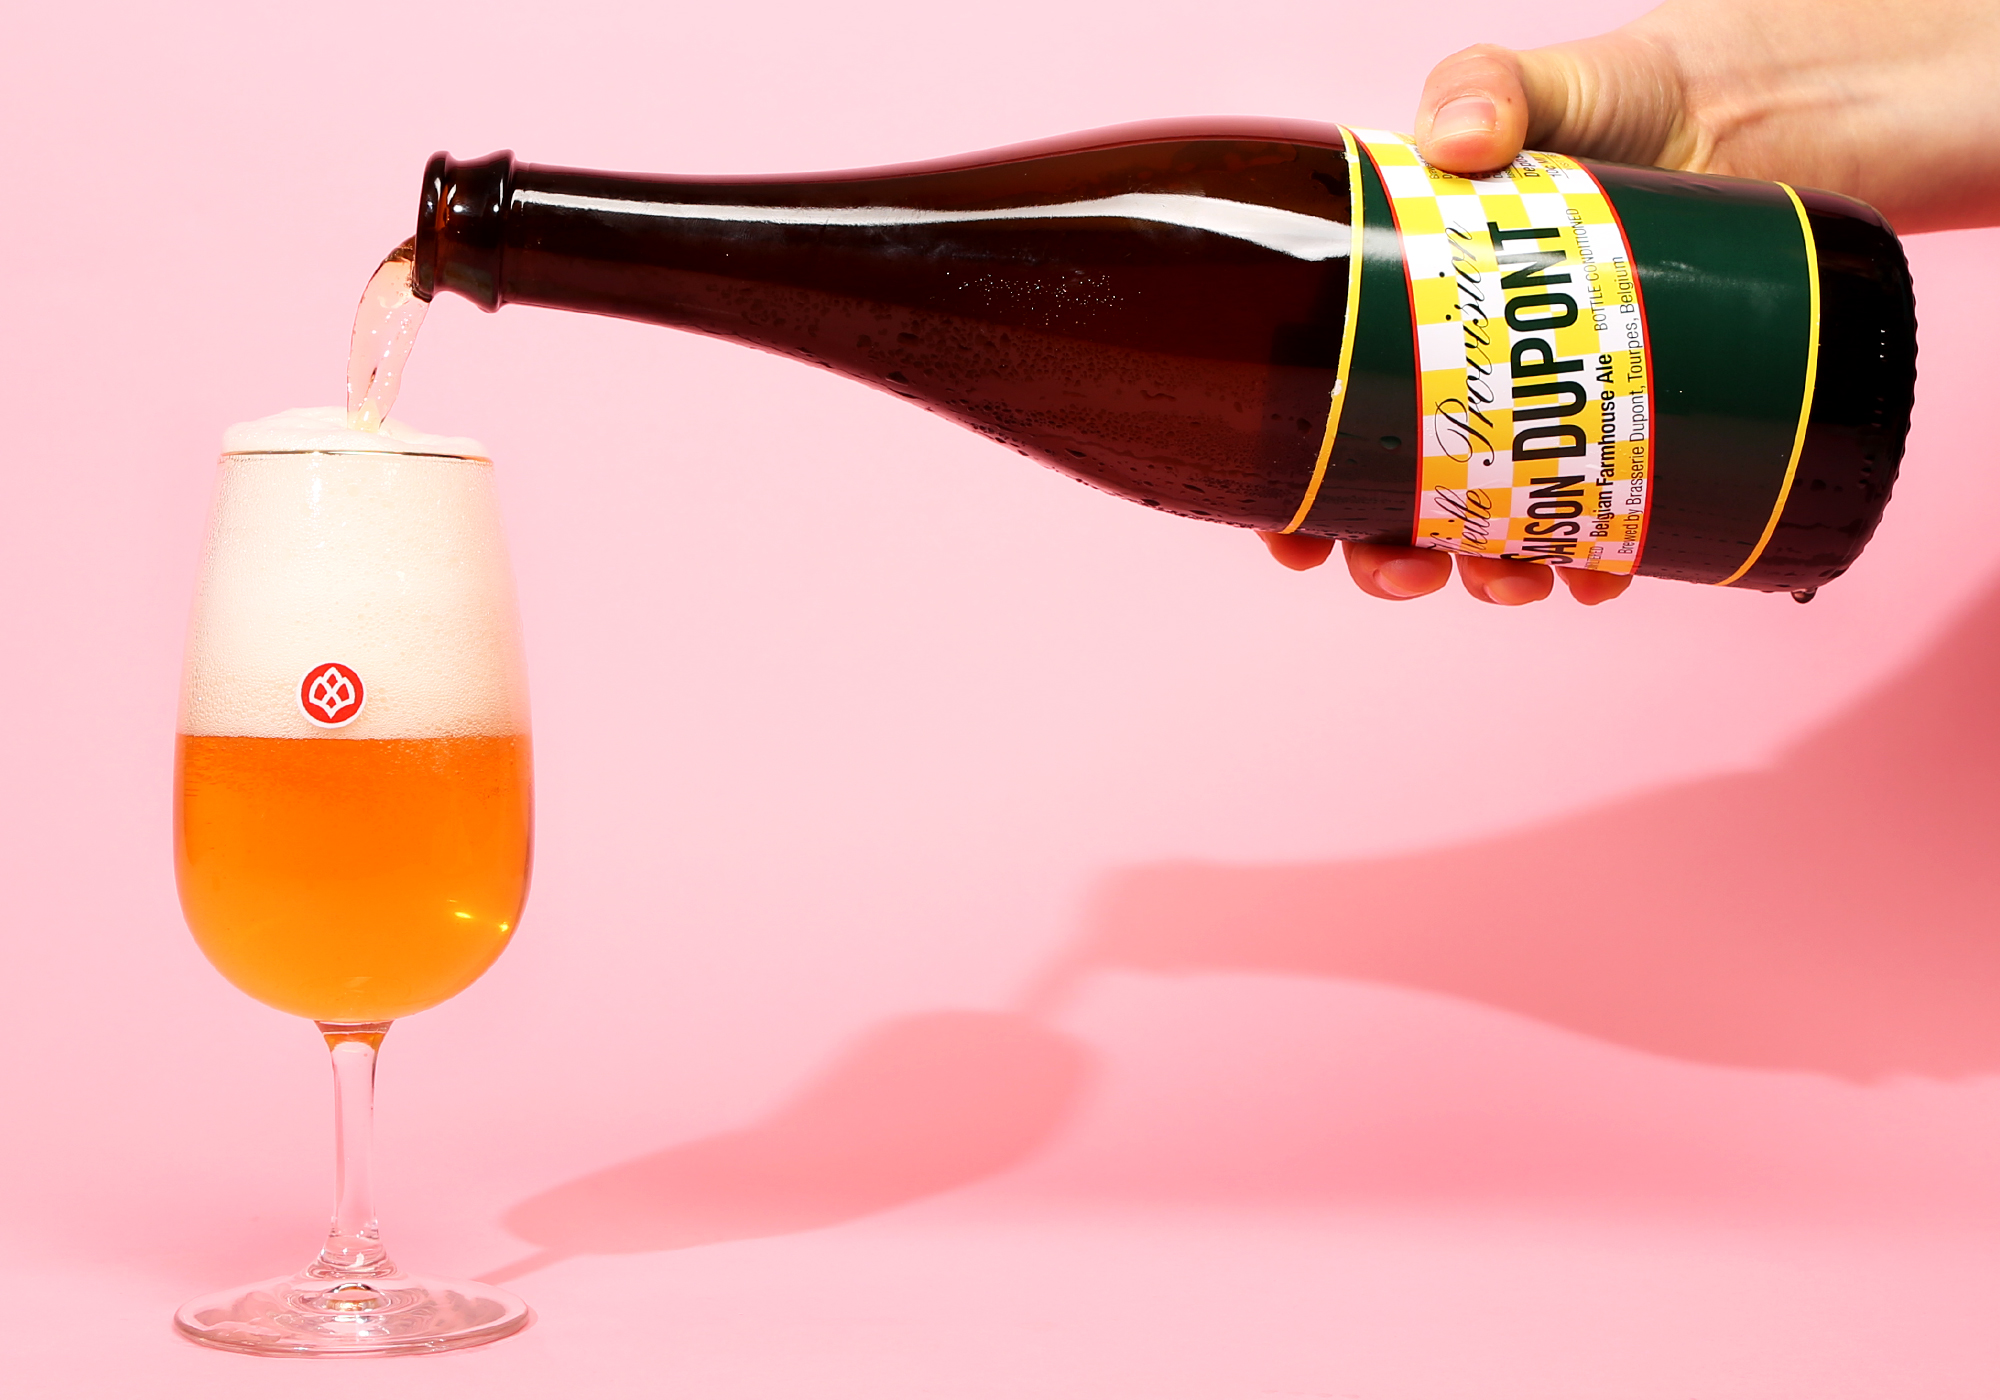 Saison Dupont Is a Perfect Beer